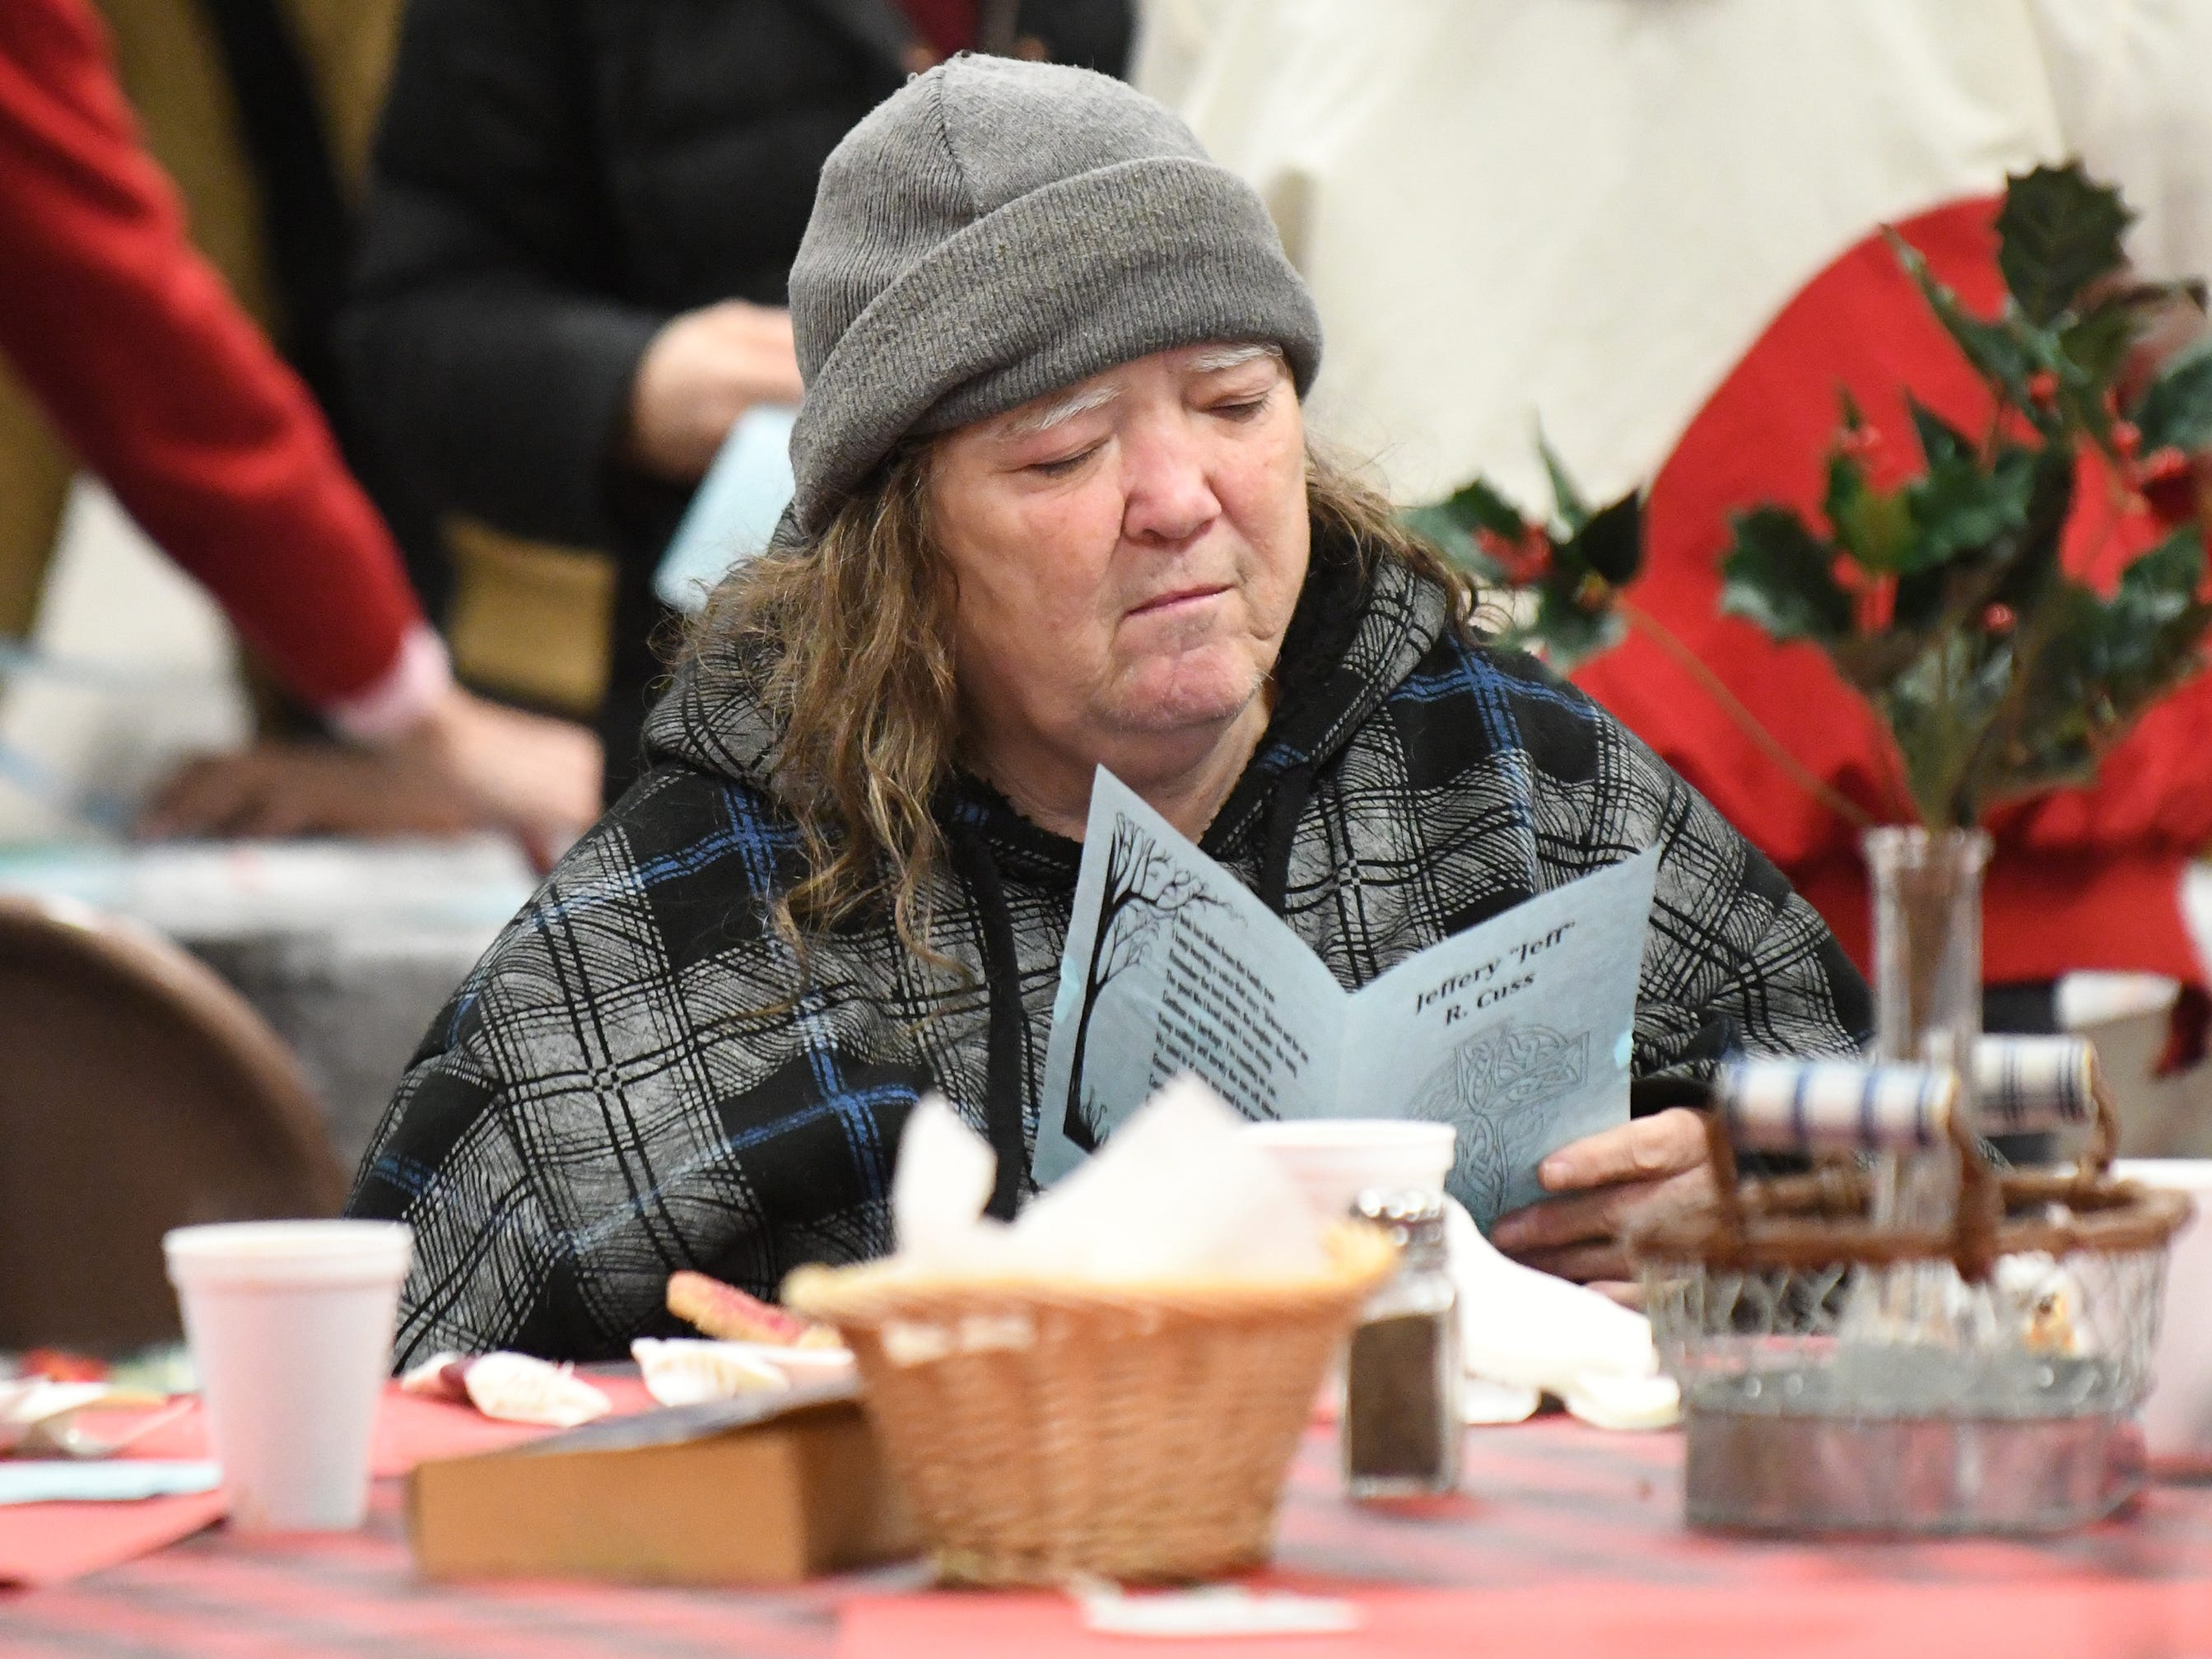 Guests listen to Pastor Michael Denelsbeck speak during a memorial service for Jeffrey Cuss at the Spirit & Truth Ministries Soup Kitchen in Vineland on Thursday, Feb. 14, 2019. Cuss was fatally struck by a car along Landis Avenue.